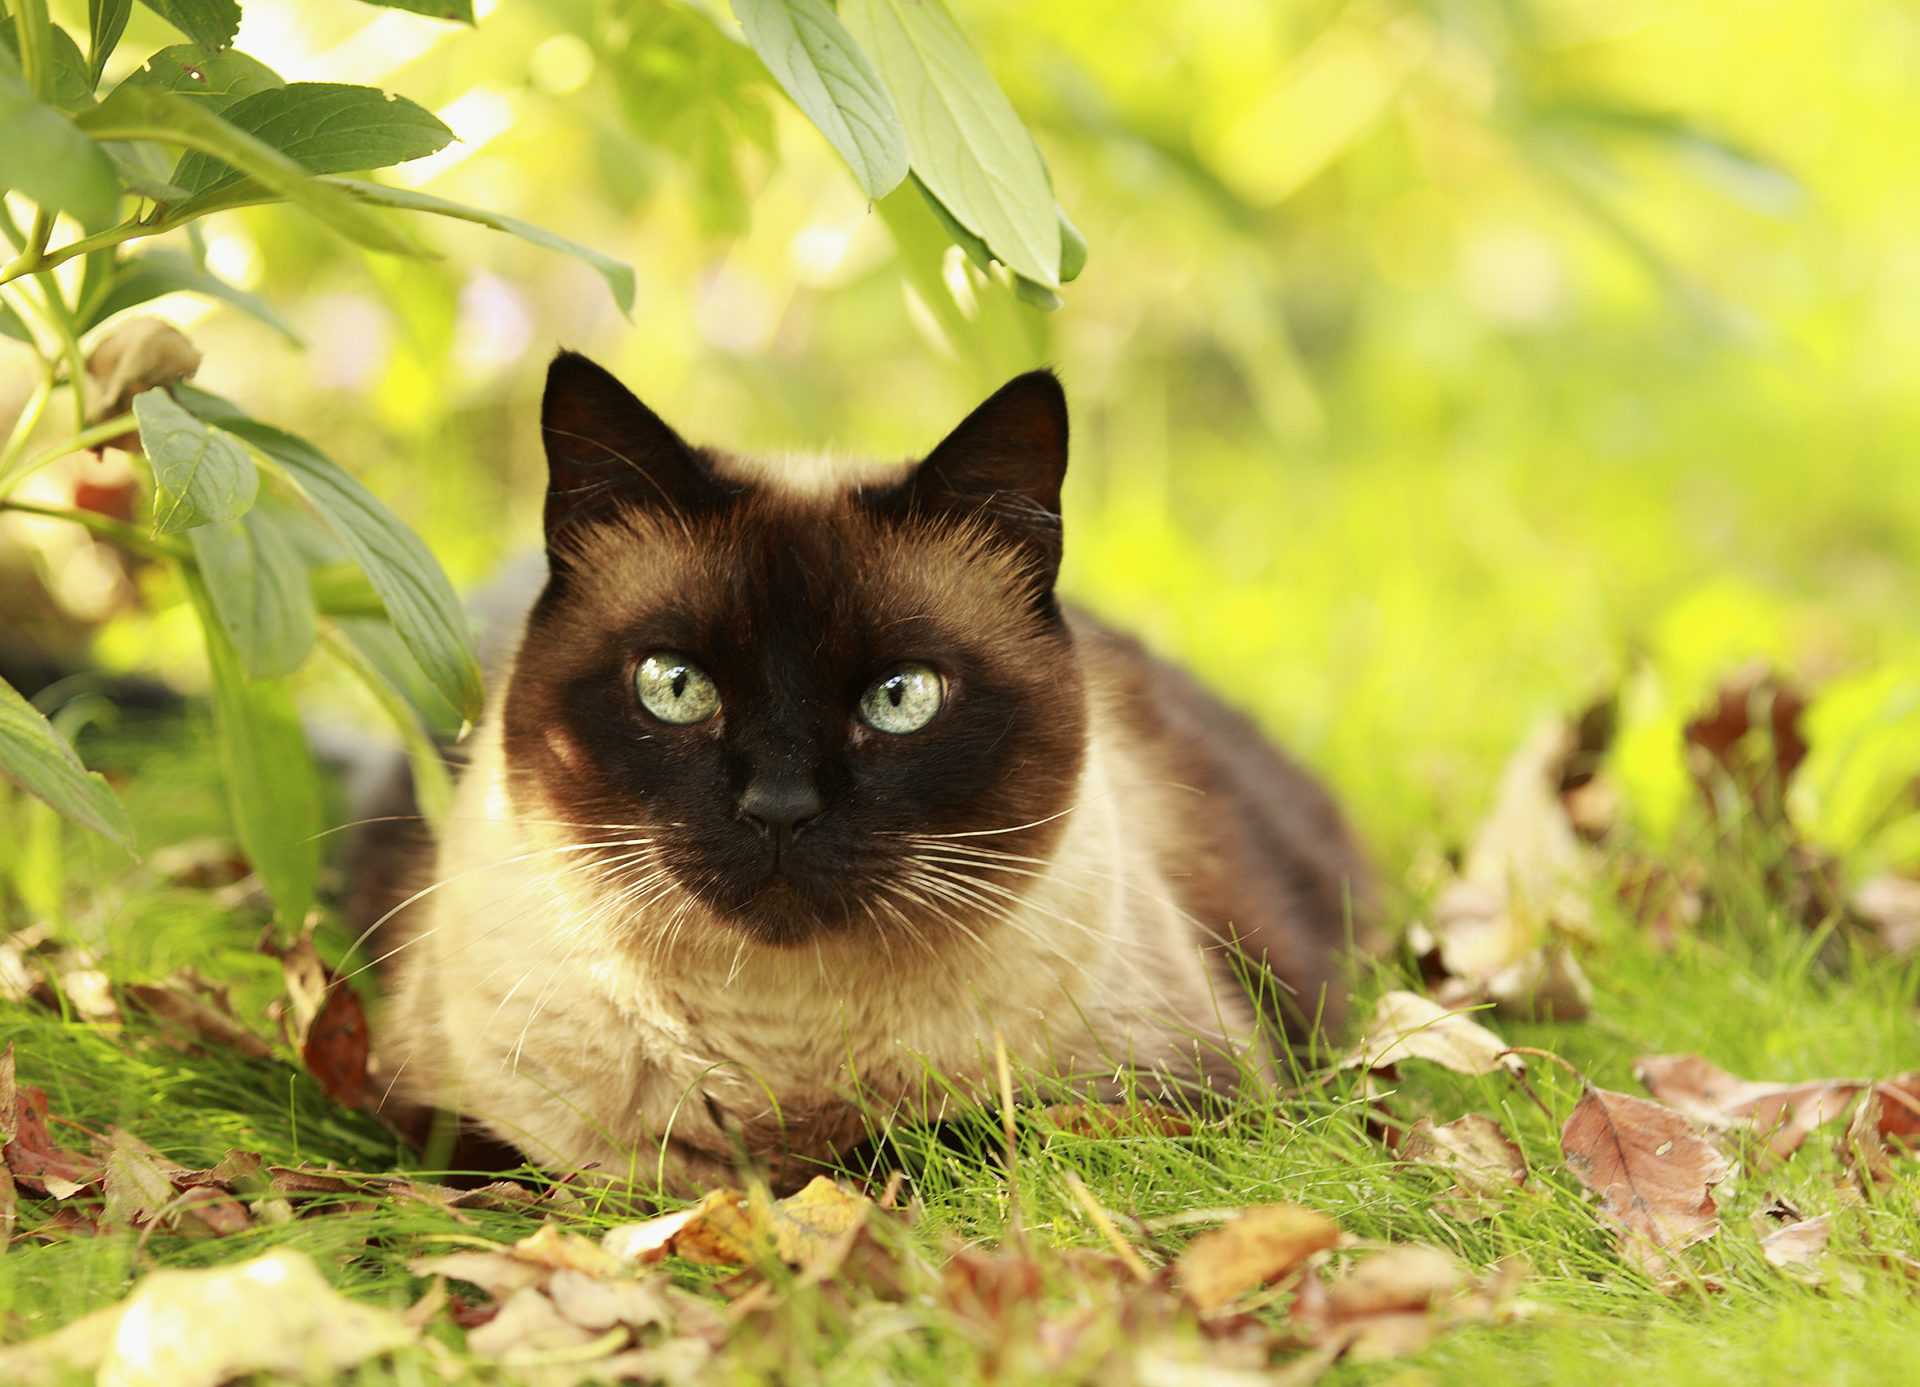 The Balinese cat sitting in the grass